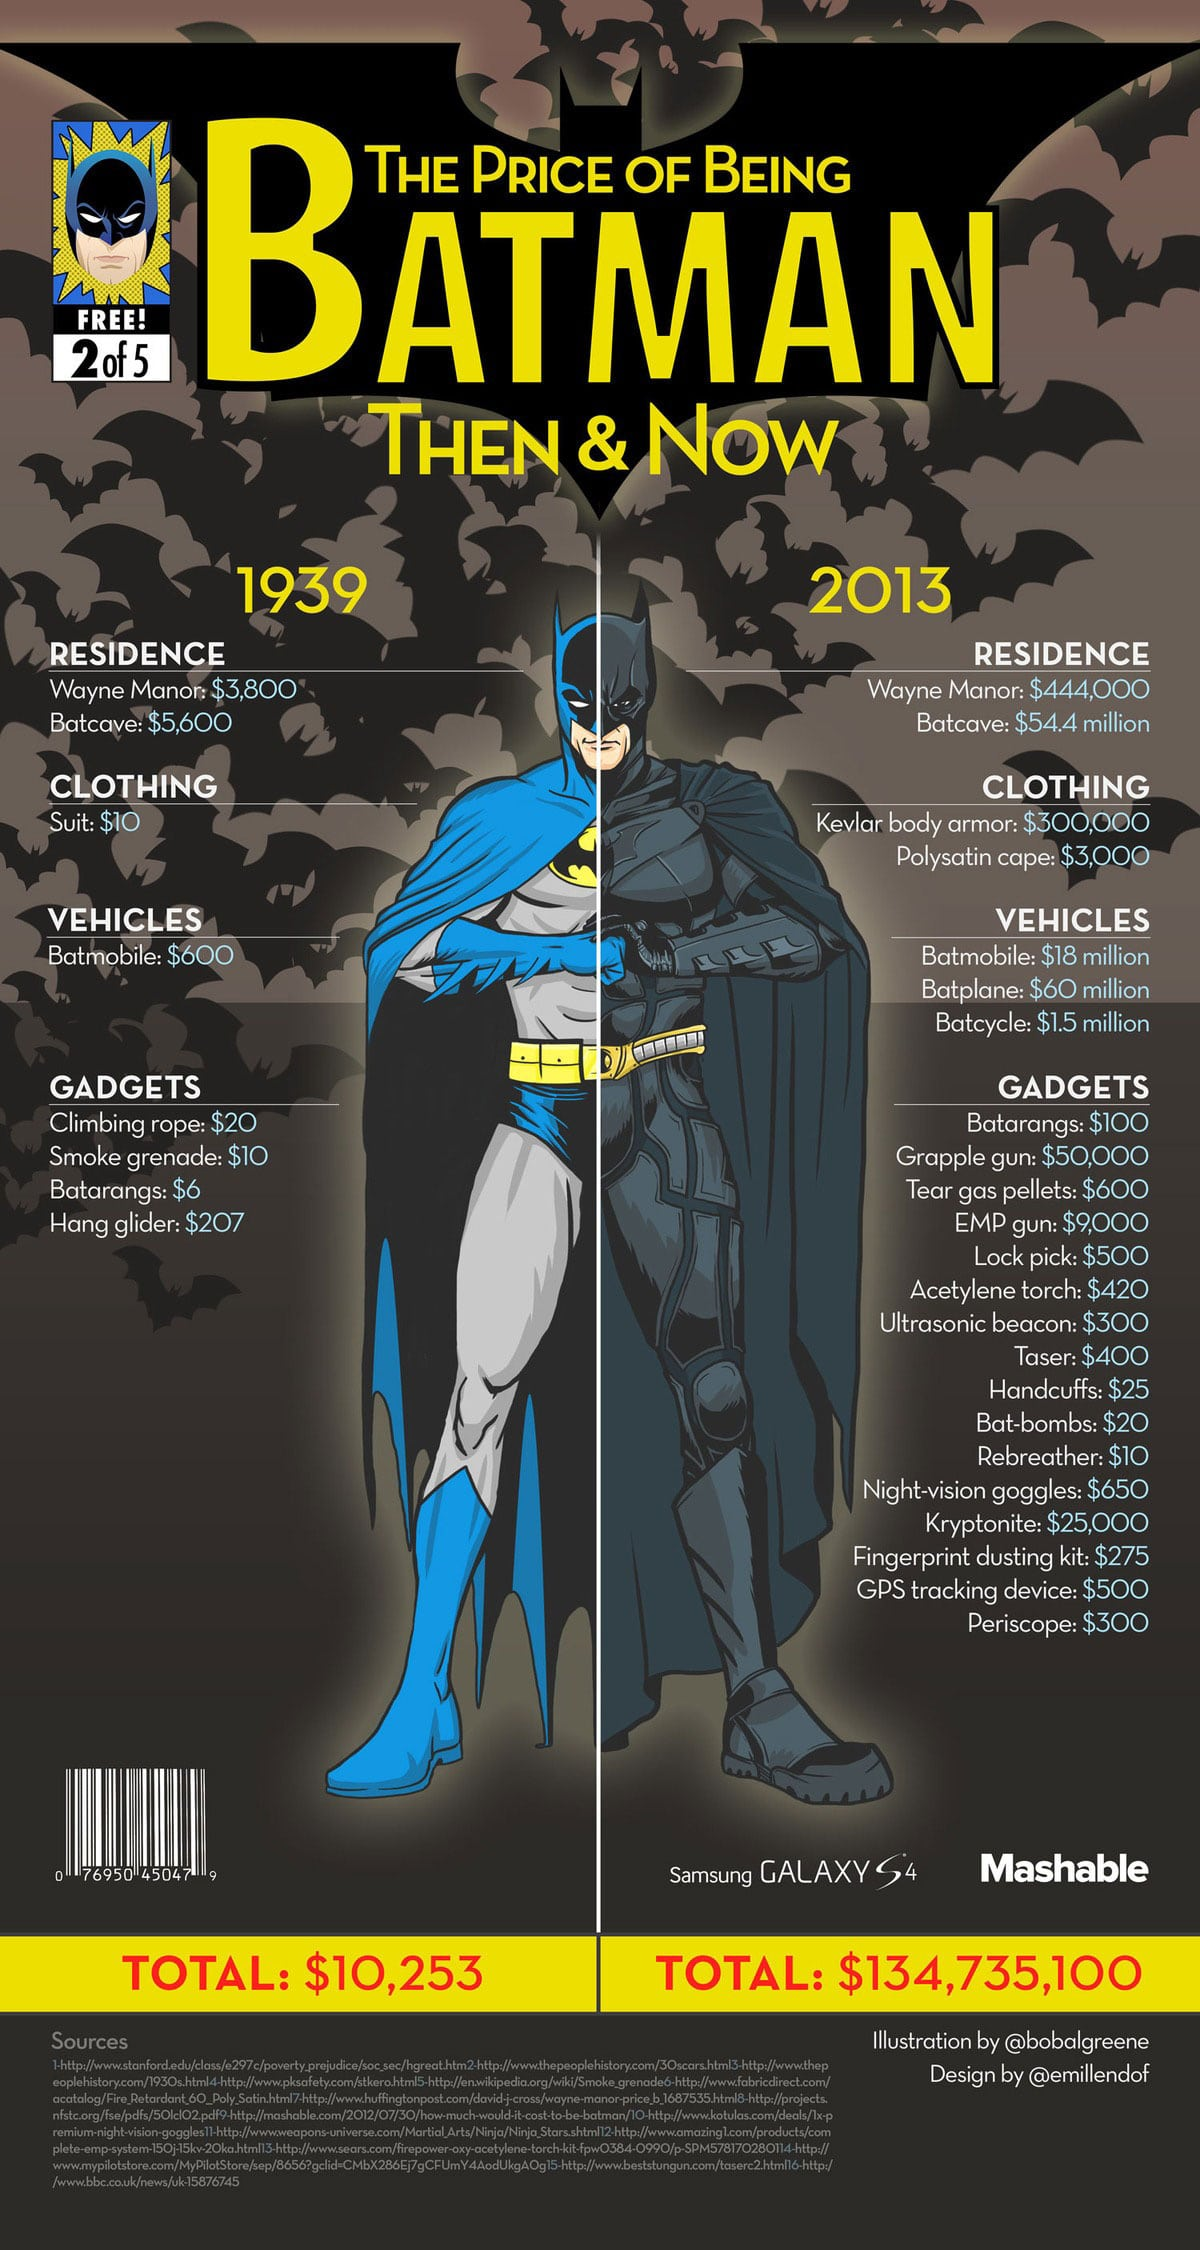 being-batman-1939-2013-infographic